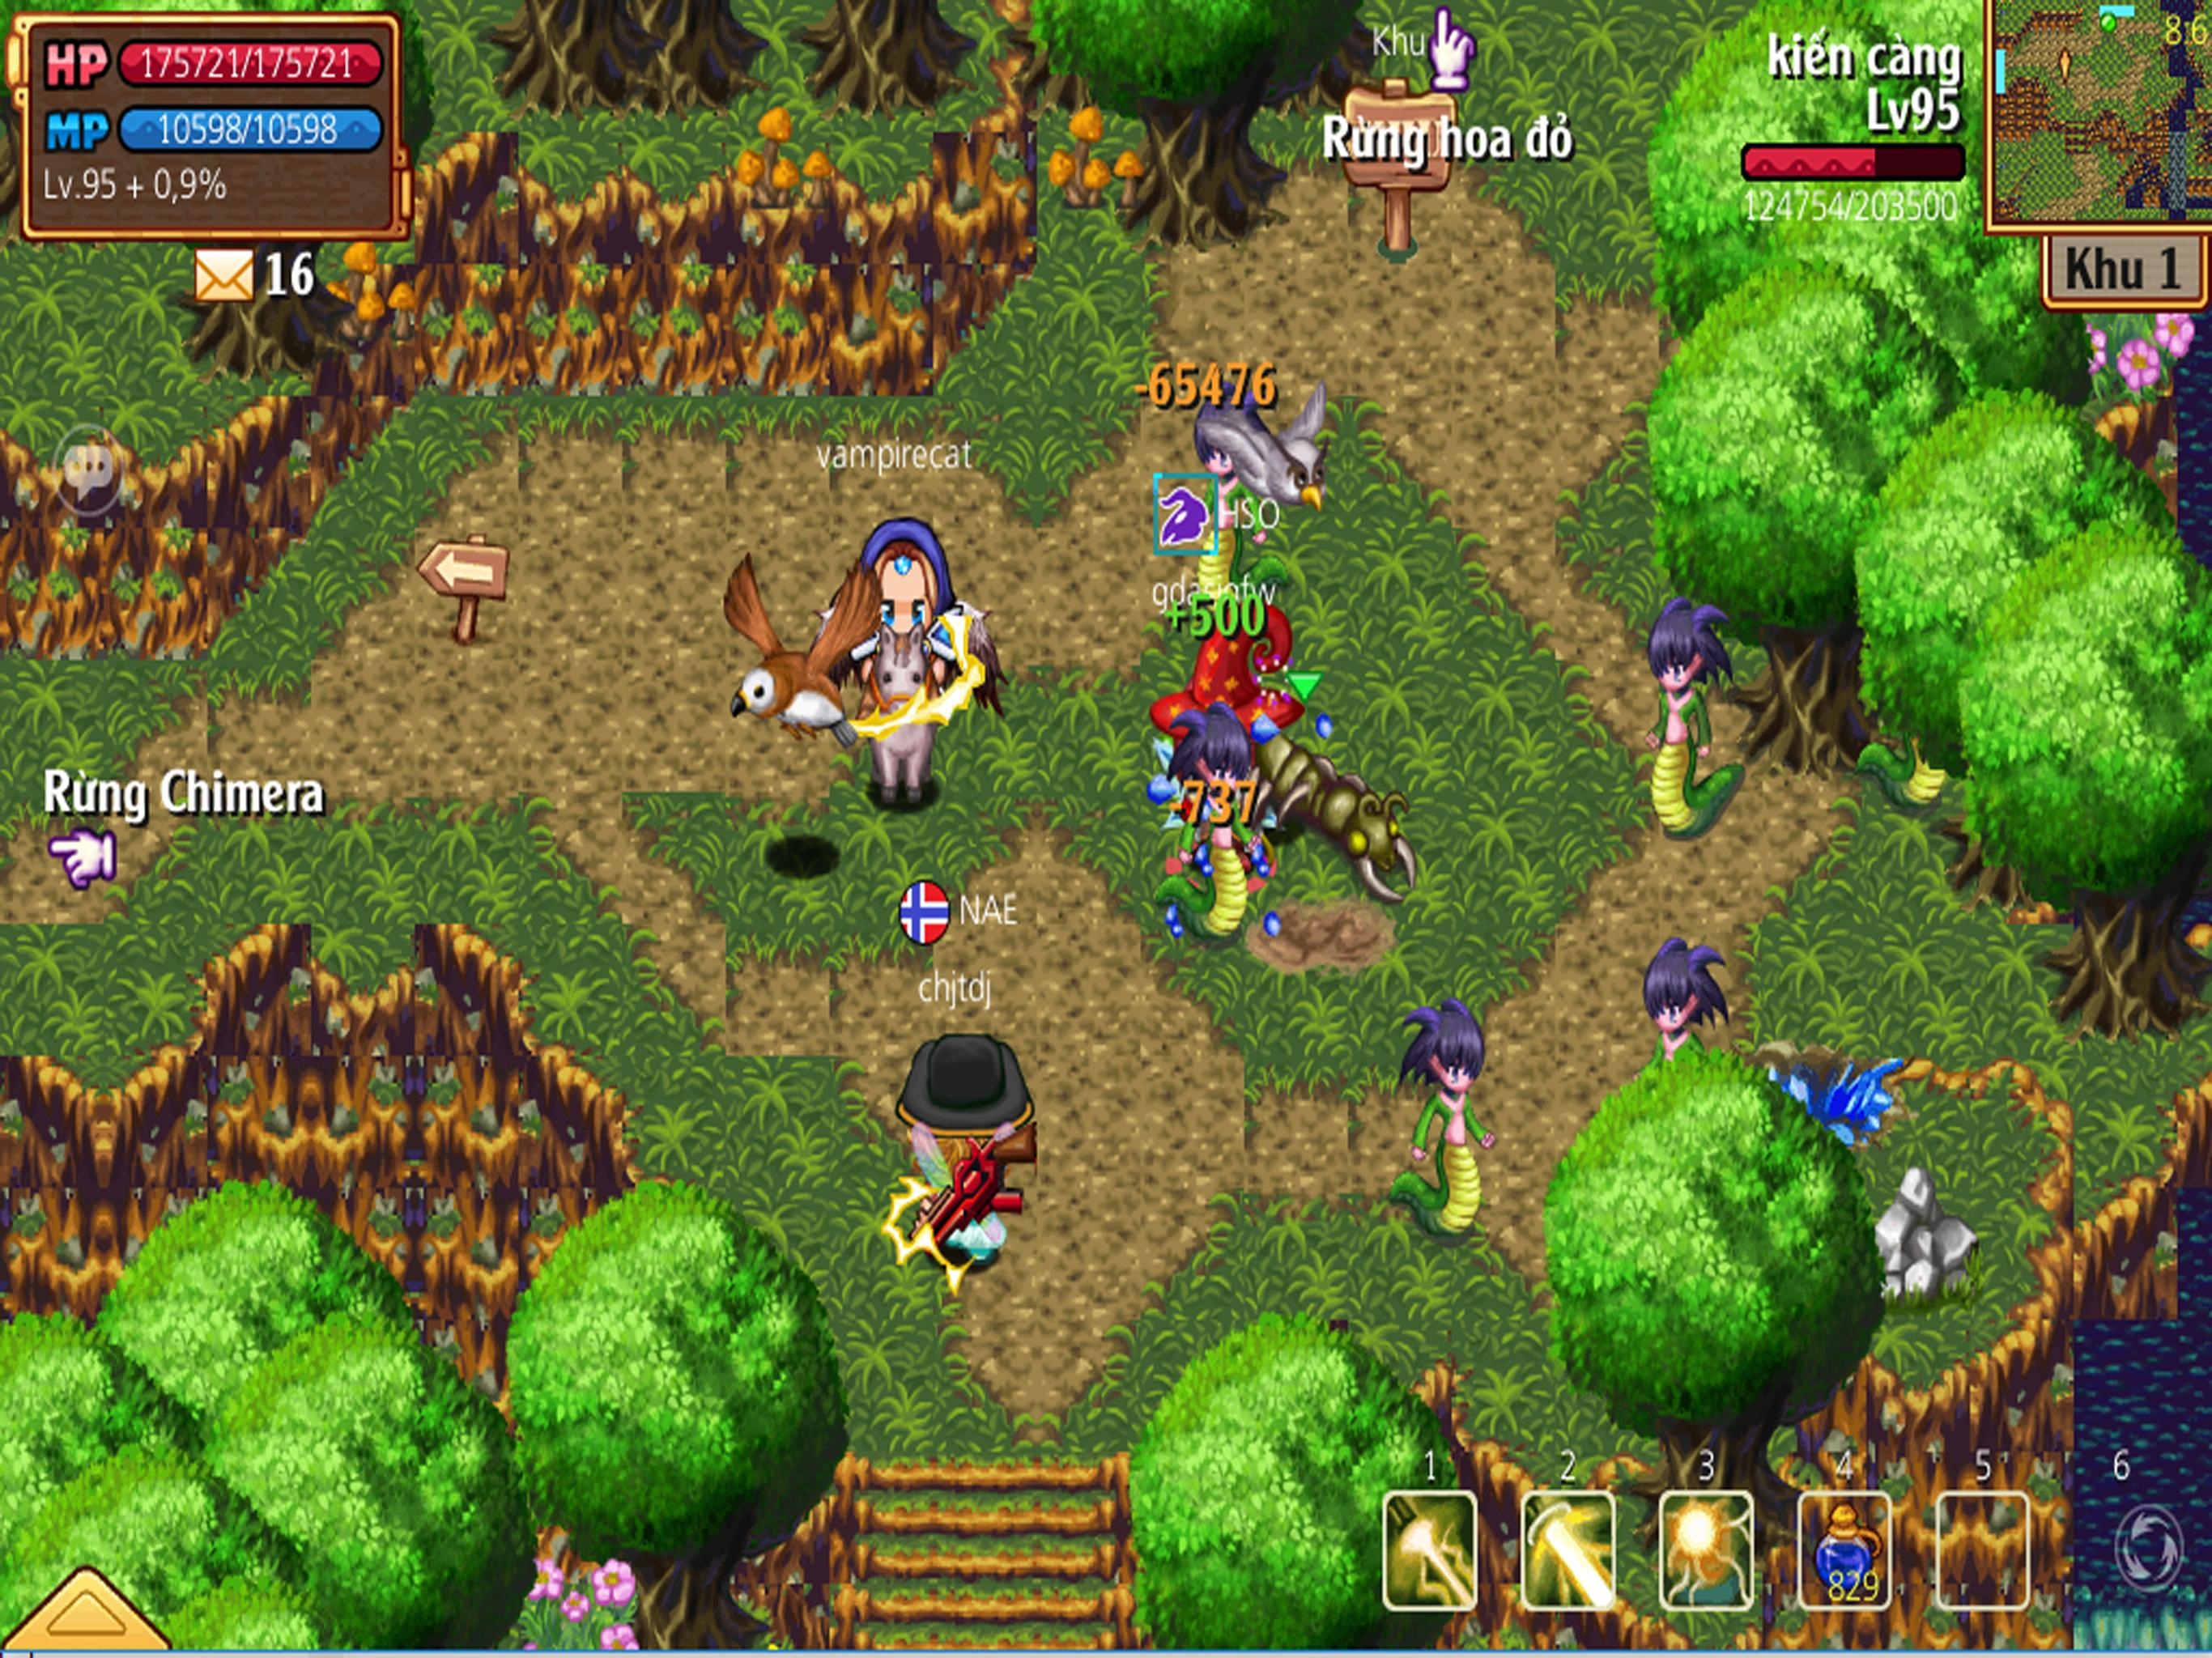 Knight and Magic - Kingdom of Chaos for Android - APK Download